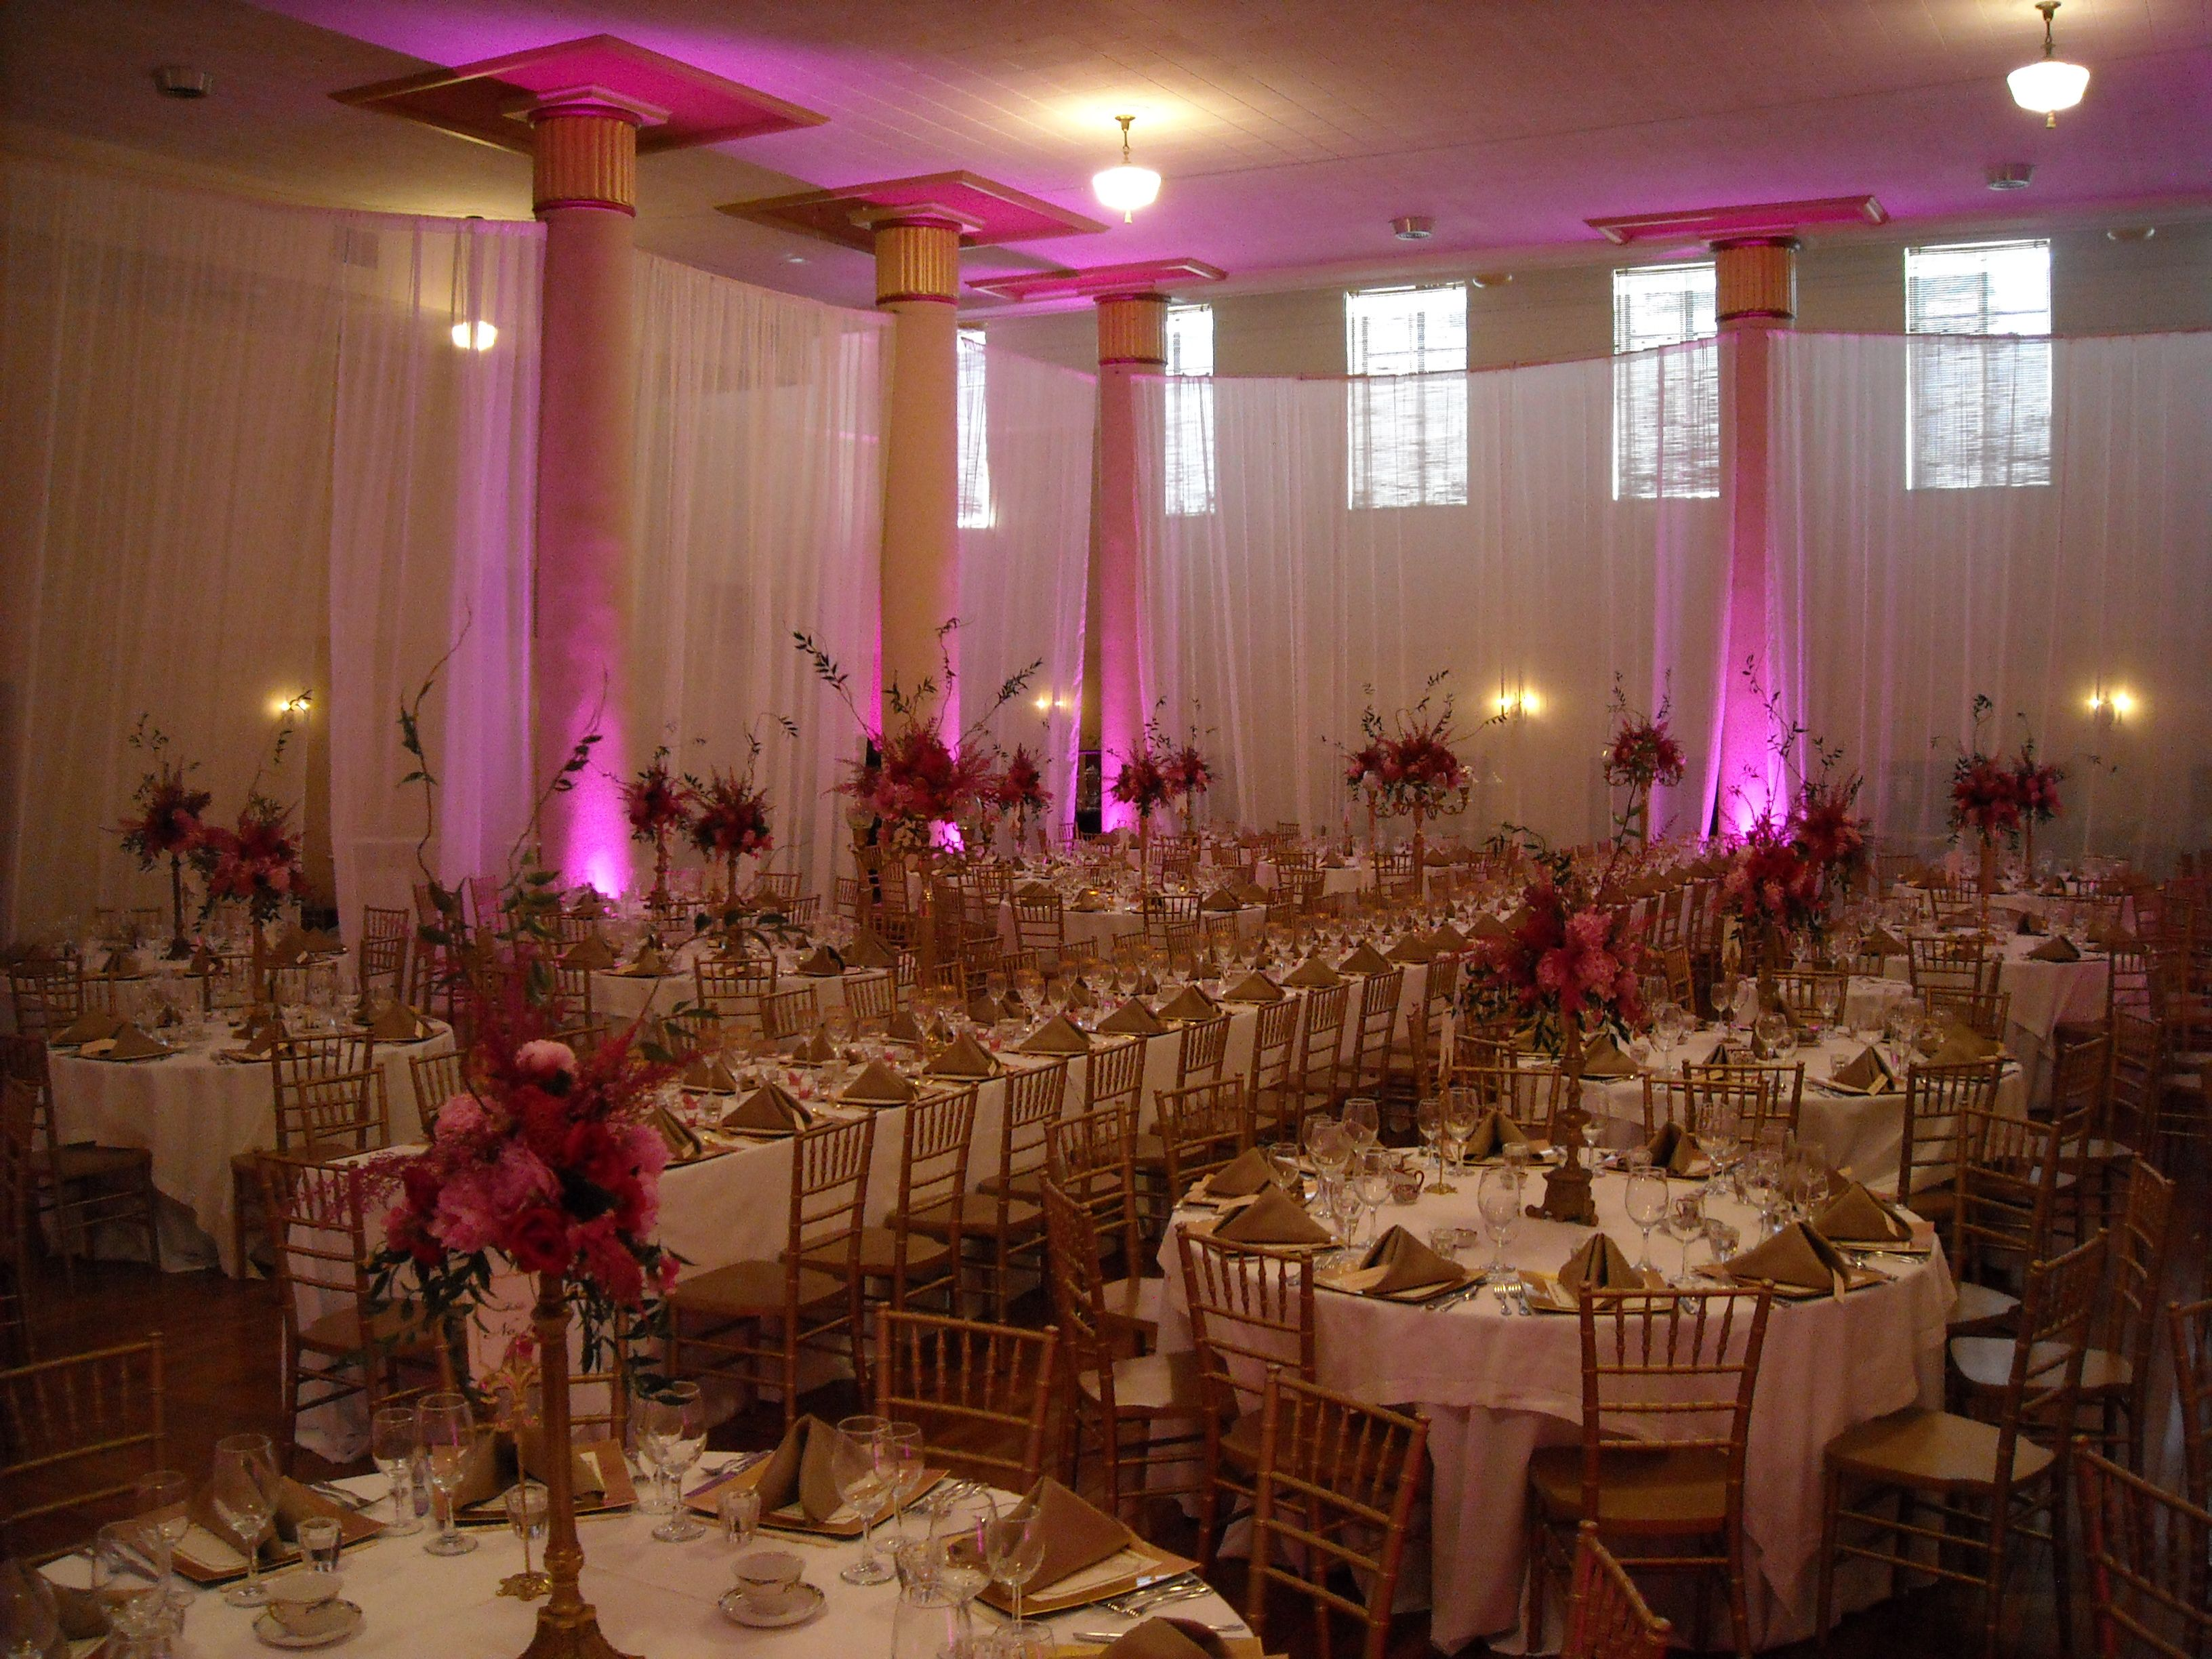 Wedding Reception At The Scottish Rite Building In Downtown Des Moines Grand Banquet Room